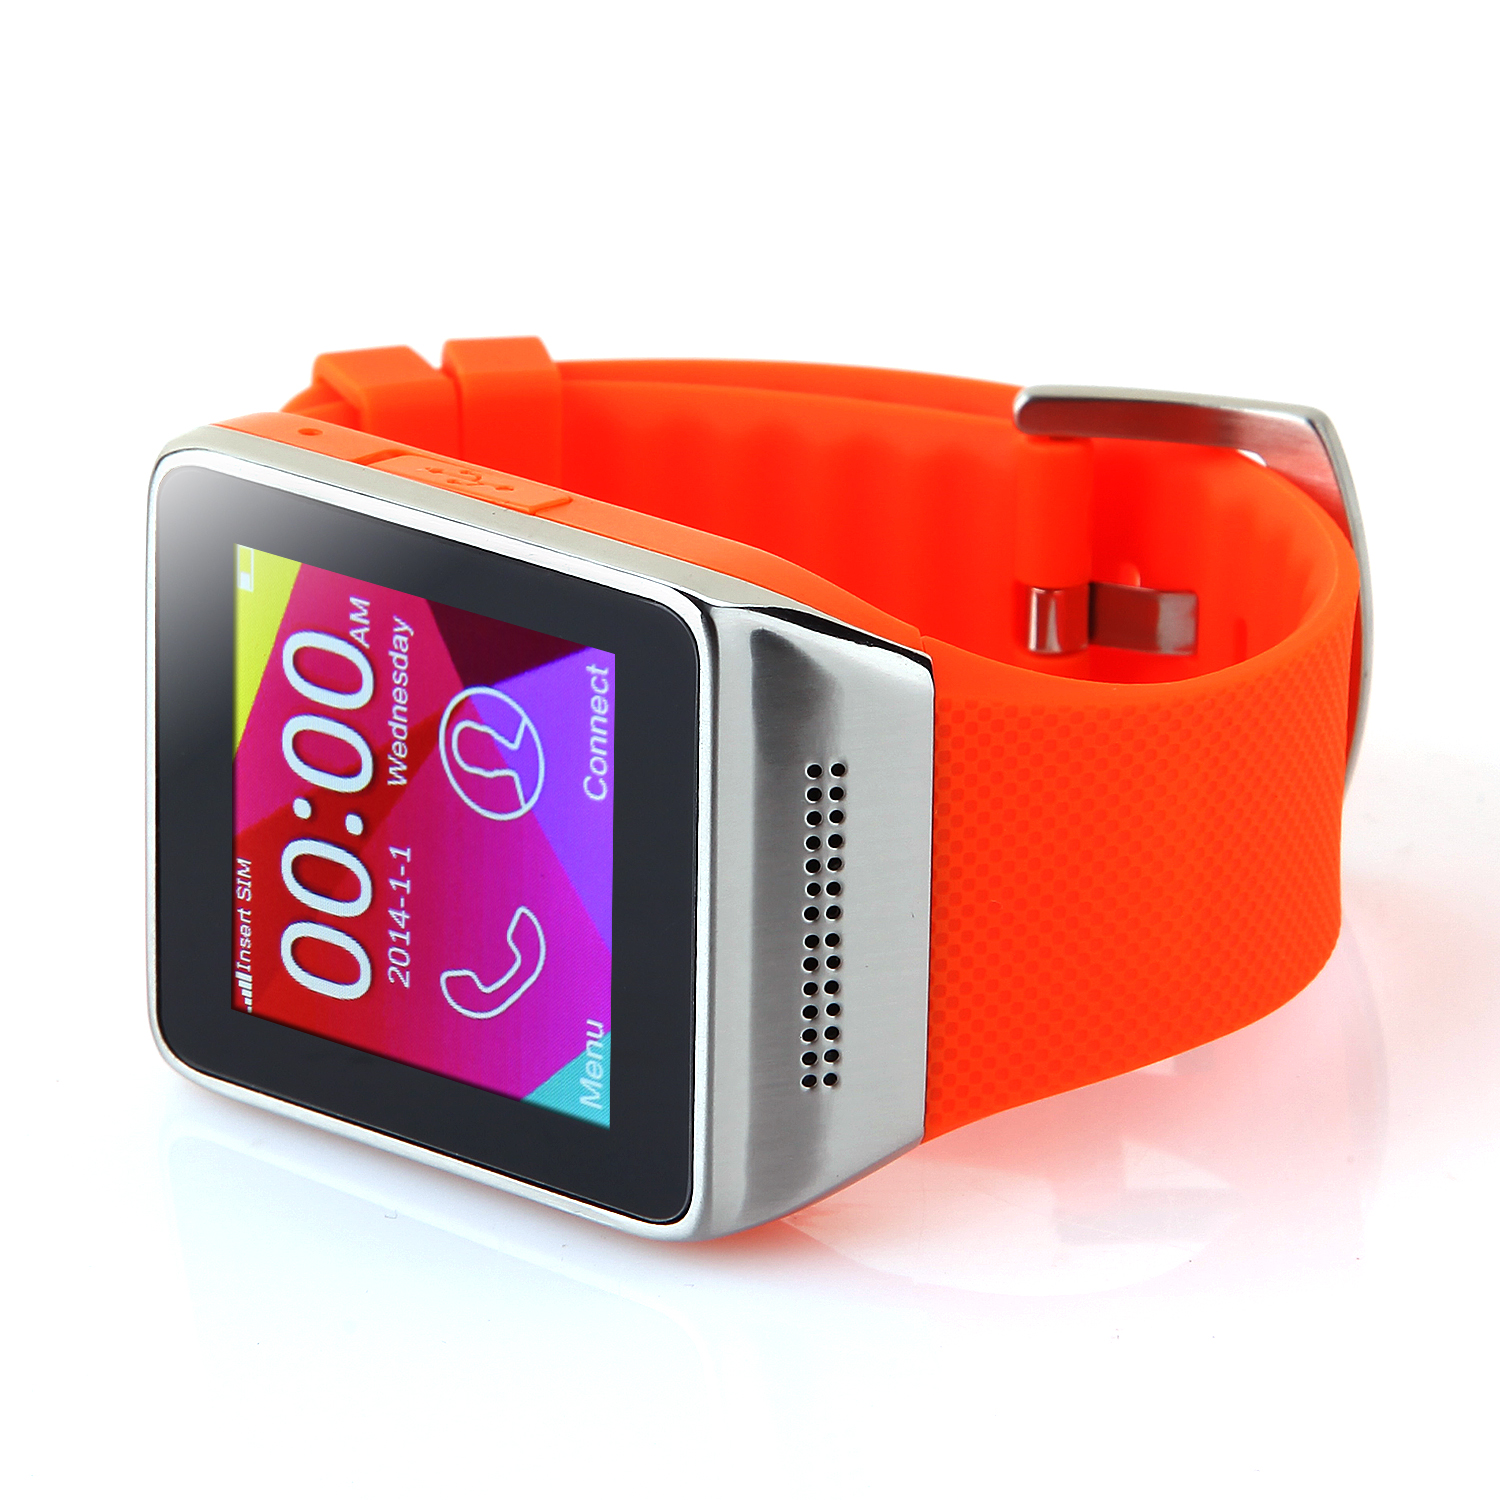 Atongm W008 Smart Watch Phone Bluetooth Watch 1.54 Inch Pedometer Anti-lost Orange